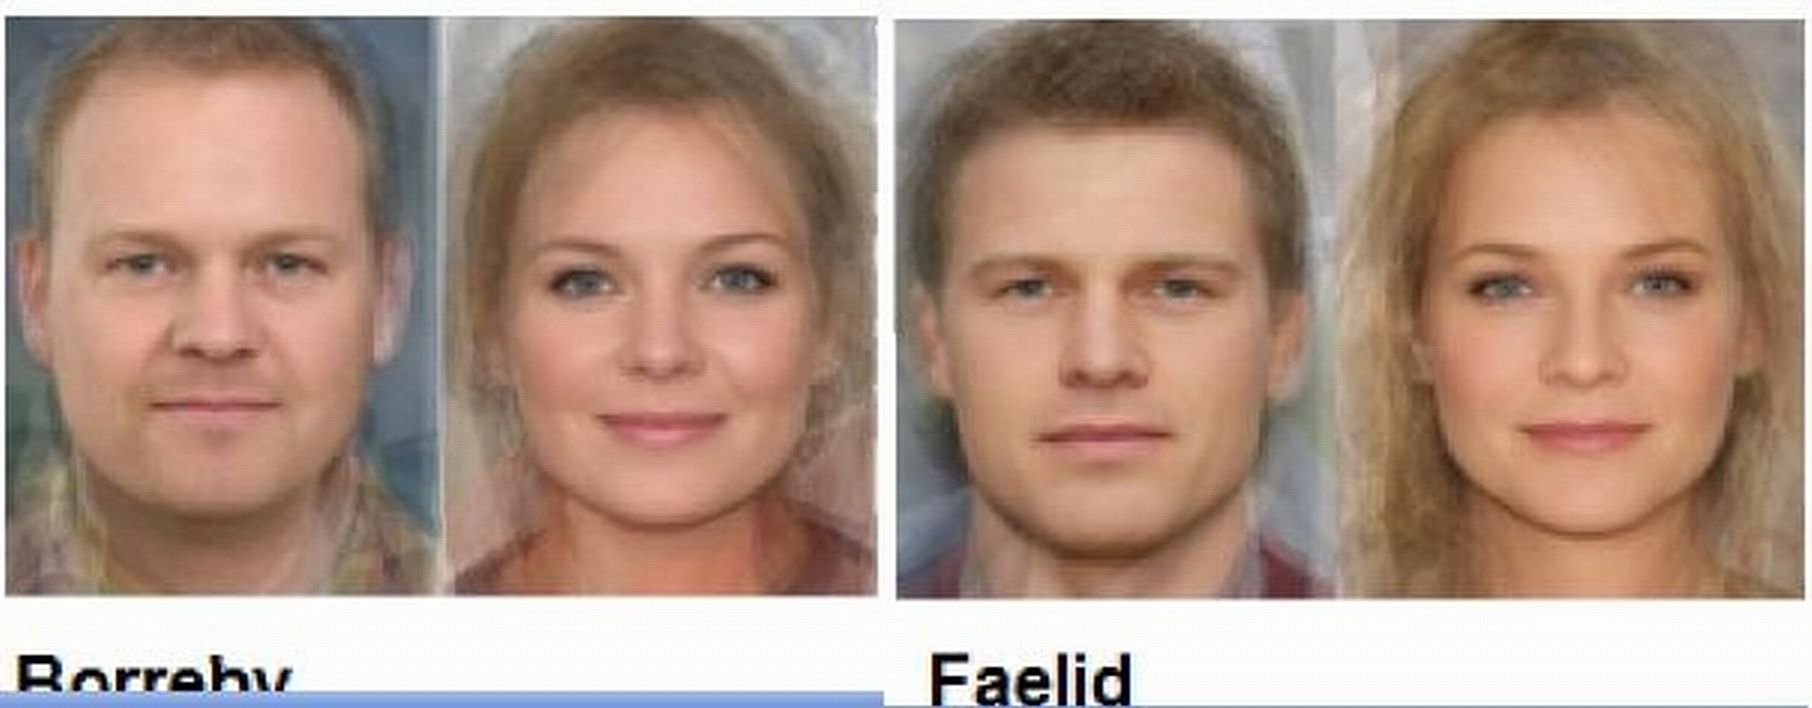 All germanic facial features think